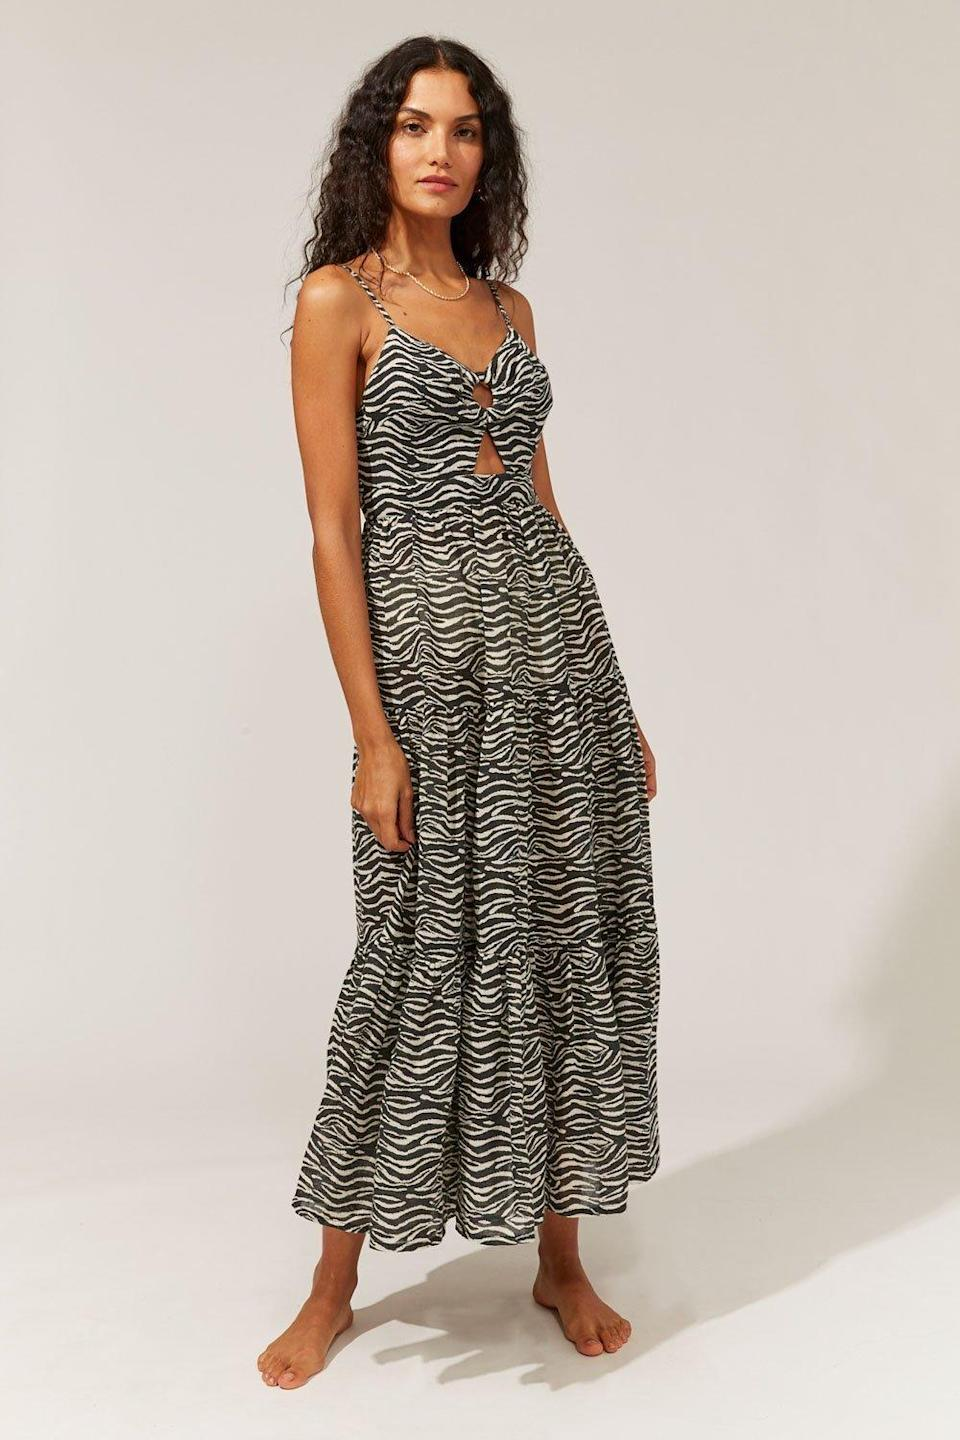 """ICYMI, Solid & Striped makes wedding-worthy dresses now, and this zebra-print maxi dress is high on our list of must-haves. $248, Solid & Striped. <a href=""""https://www.solidandstriped.com/collections/relaunch-dresses/products/the-esme-dress-printed-linen-gauze-zebra-print"""" rel=""""nofollow noopener"""" target=""""_blank"""" data-ylk=""""slk:Get it now!"""" class=""""link rapid-noclick-resp"""">Get it now!</a>"""